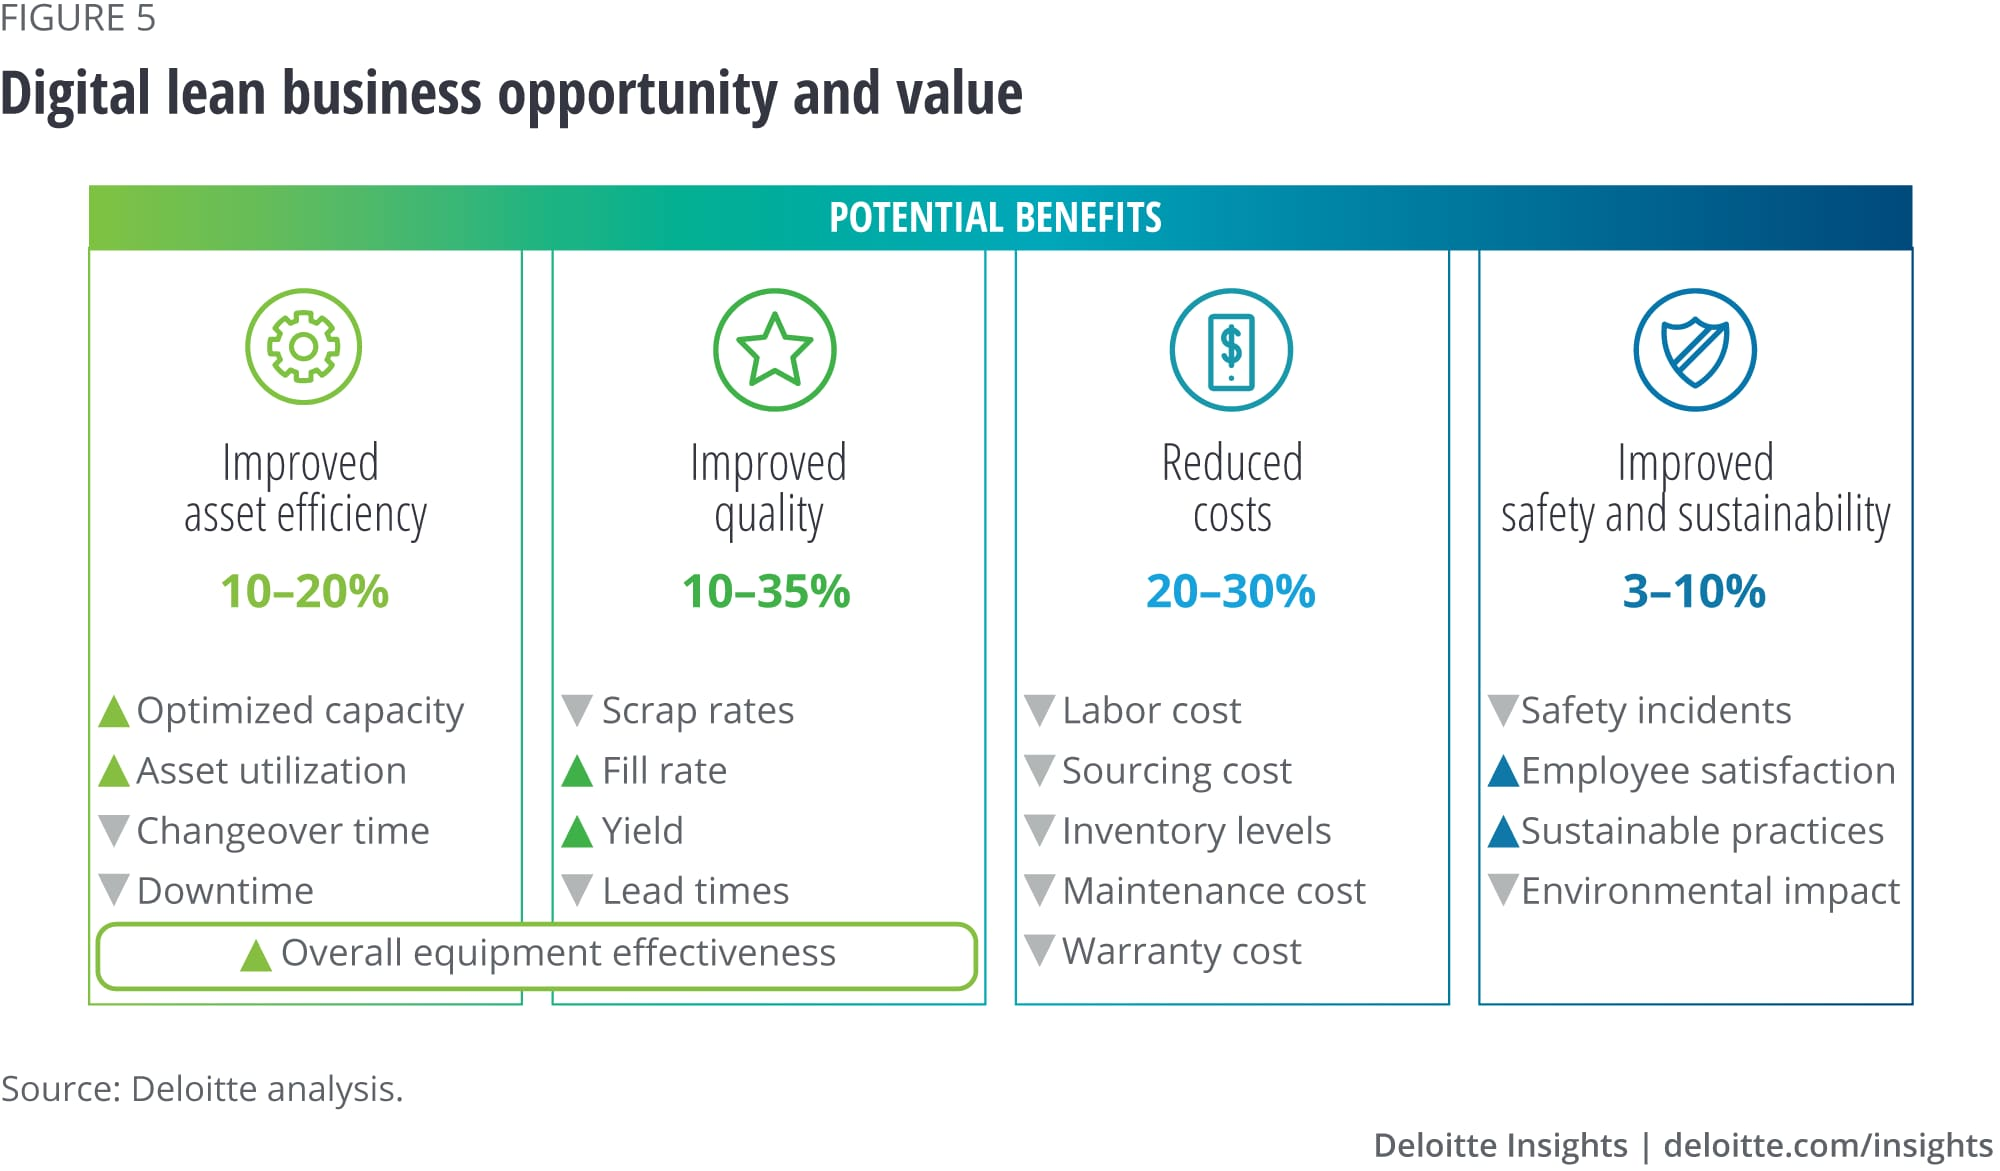 Digital lean business opportunity and value